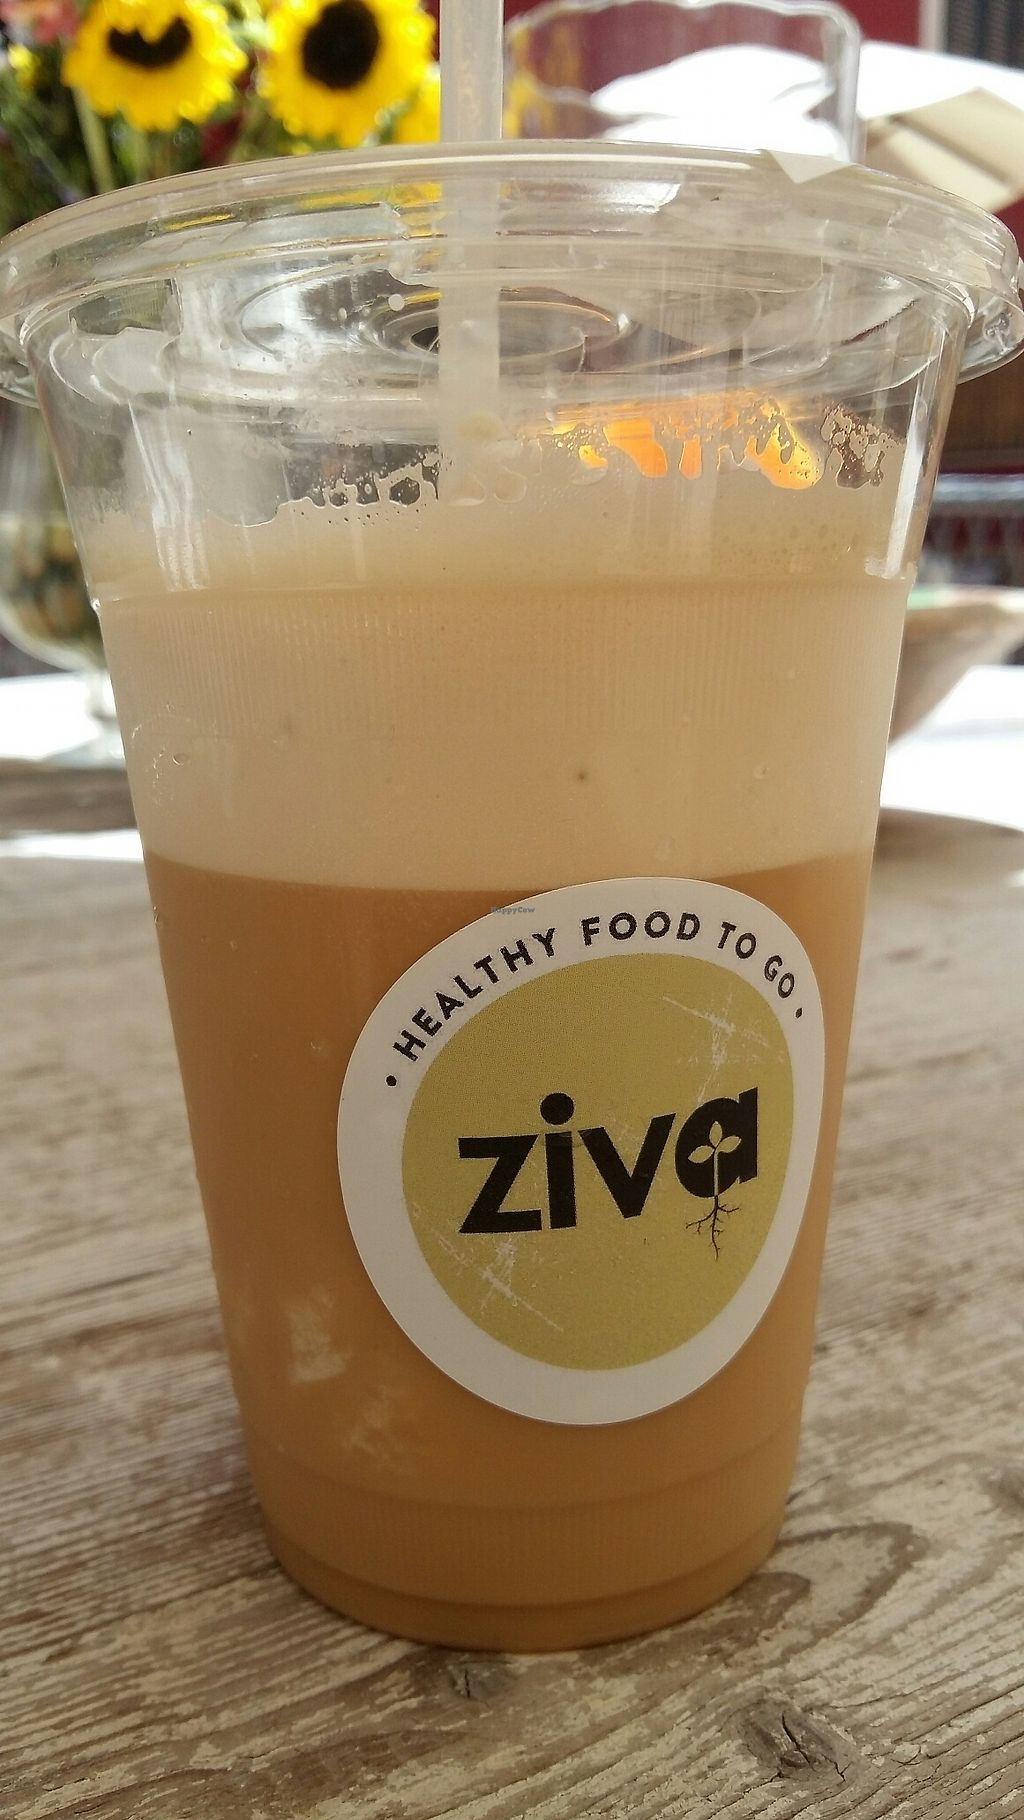 "Photo of Ziva To Go - Center  by <a href=""/members/profile/daisybell"">daisybell</a> <br/>iced coffee  <br/> July 28, 2017  - <a href='/contact/abuse/image/83384/285906'>Report</a>"